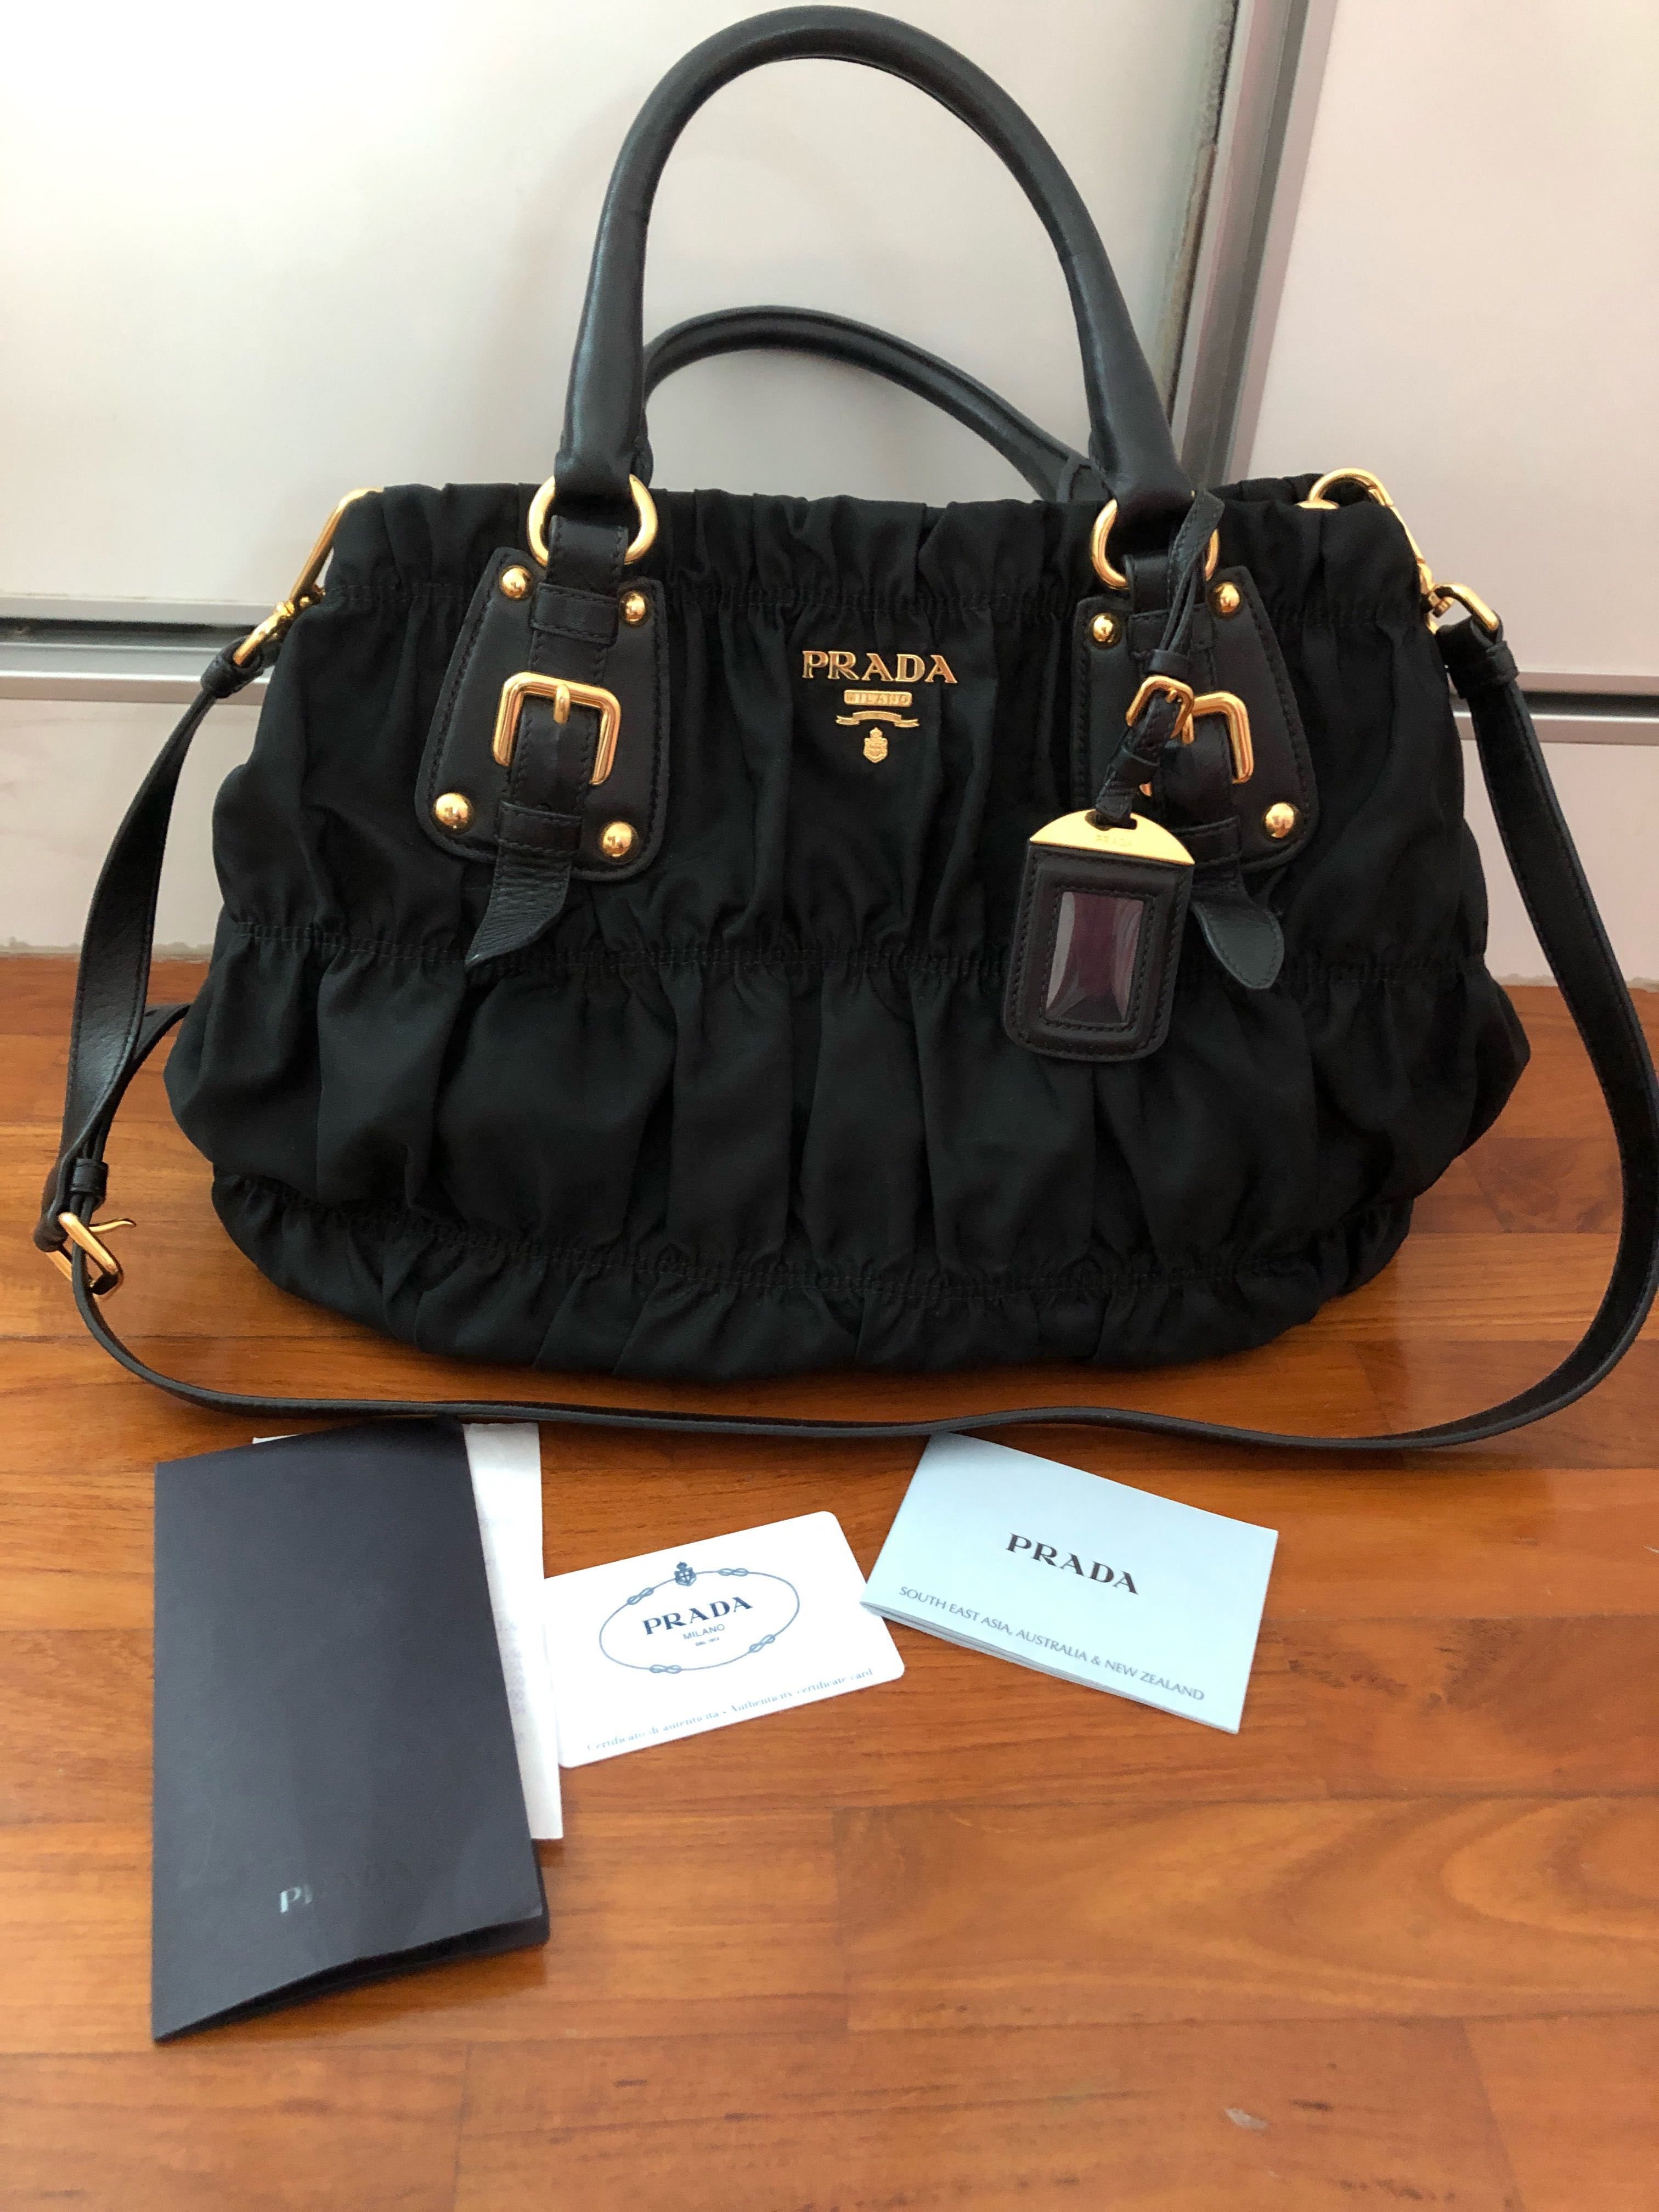 935aec63f6f993 ... australia prada bag bn1792 tessuto gaufre womens fashion bags wallets  others on carousell cc452 07a6d coupon code authentic ...